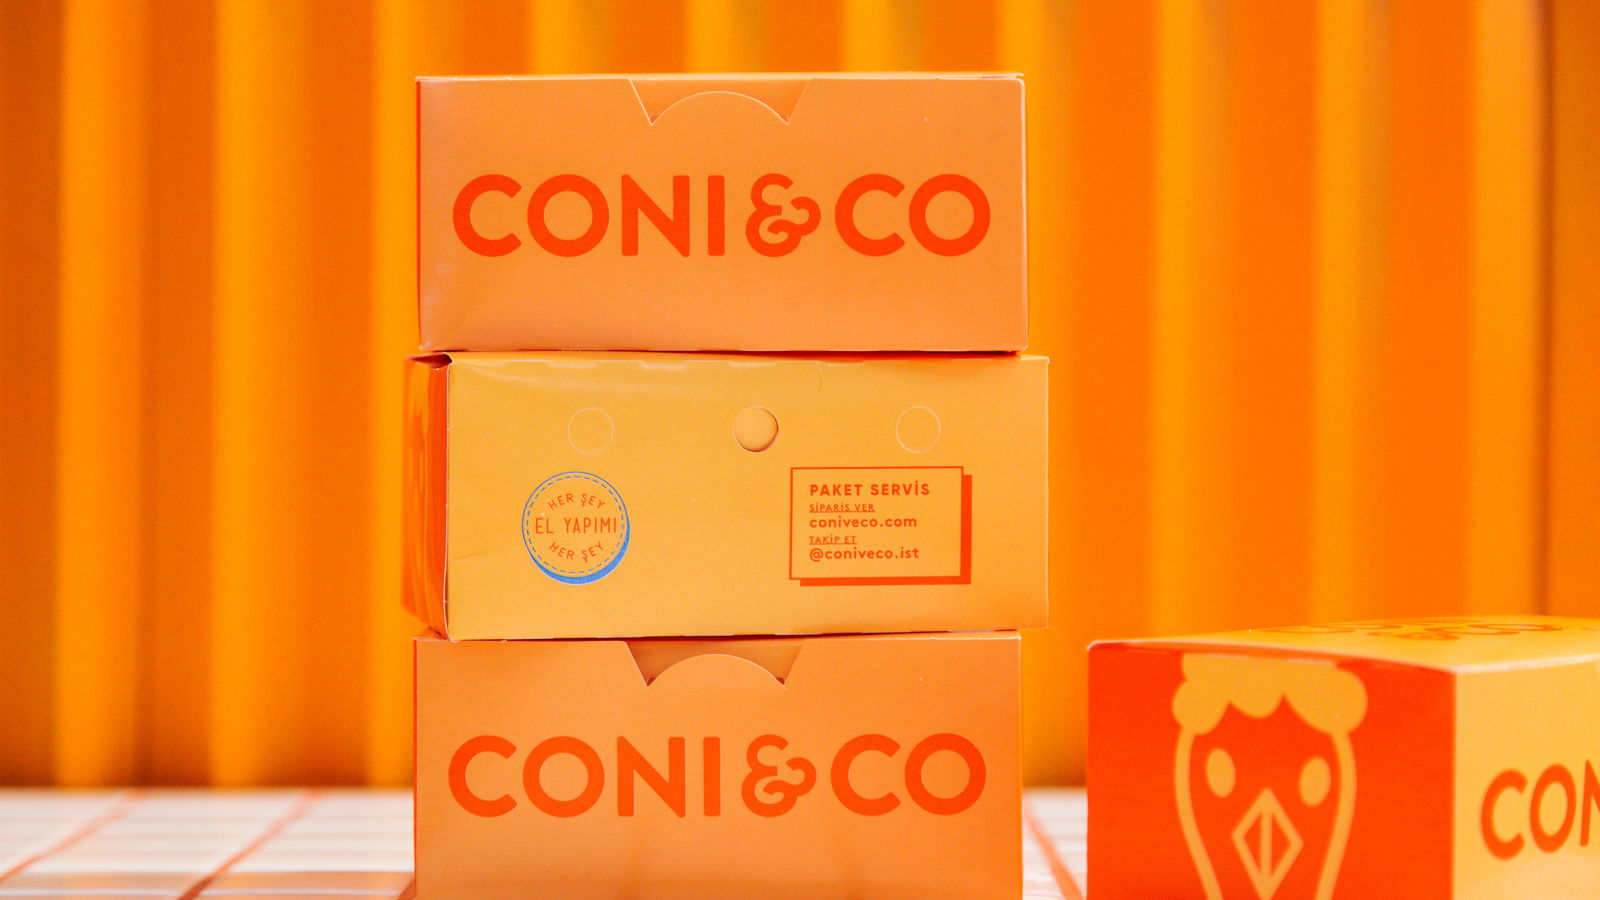 We're Loving Coni & Co's Simplistic and Bold Branding & Takeout Packaging